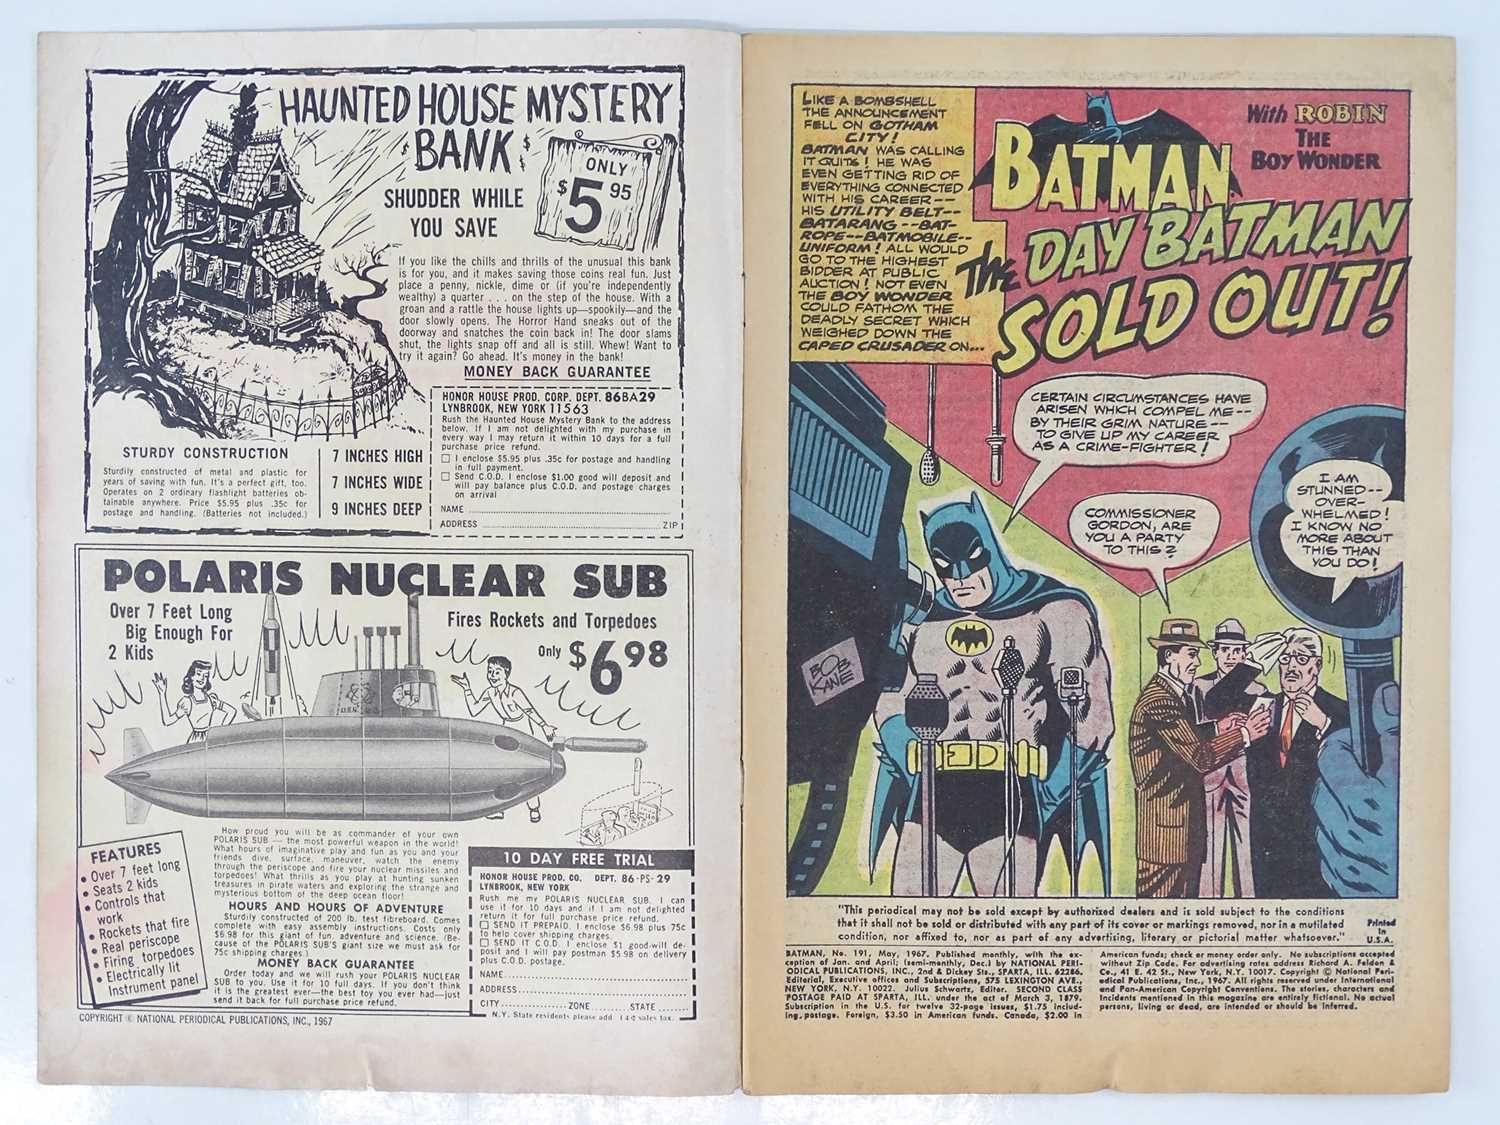 BATMAN #191 - (1967 - DC - UK Cover Price) - Joker and Penguin appearances in this BAT-AUCTION issue - Image 3 of 9